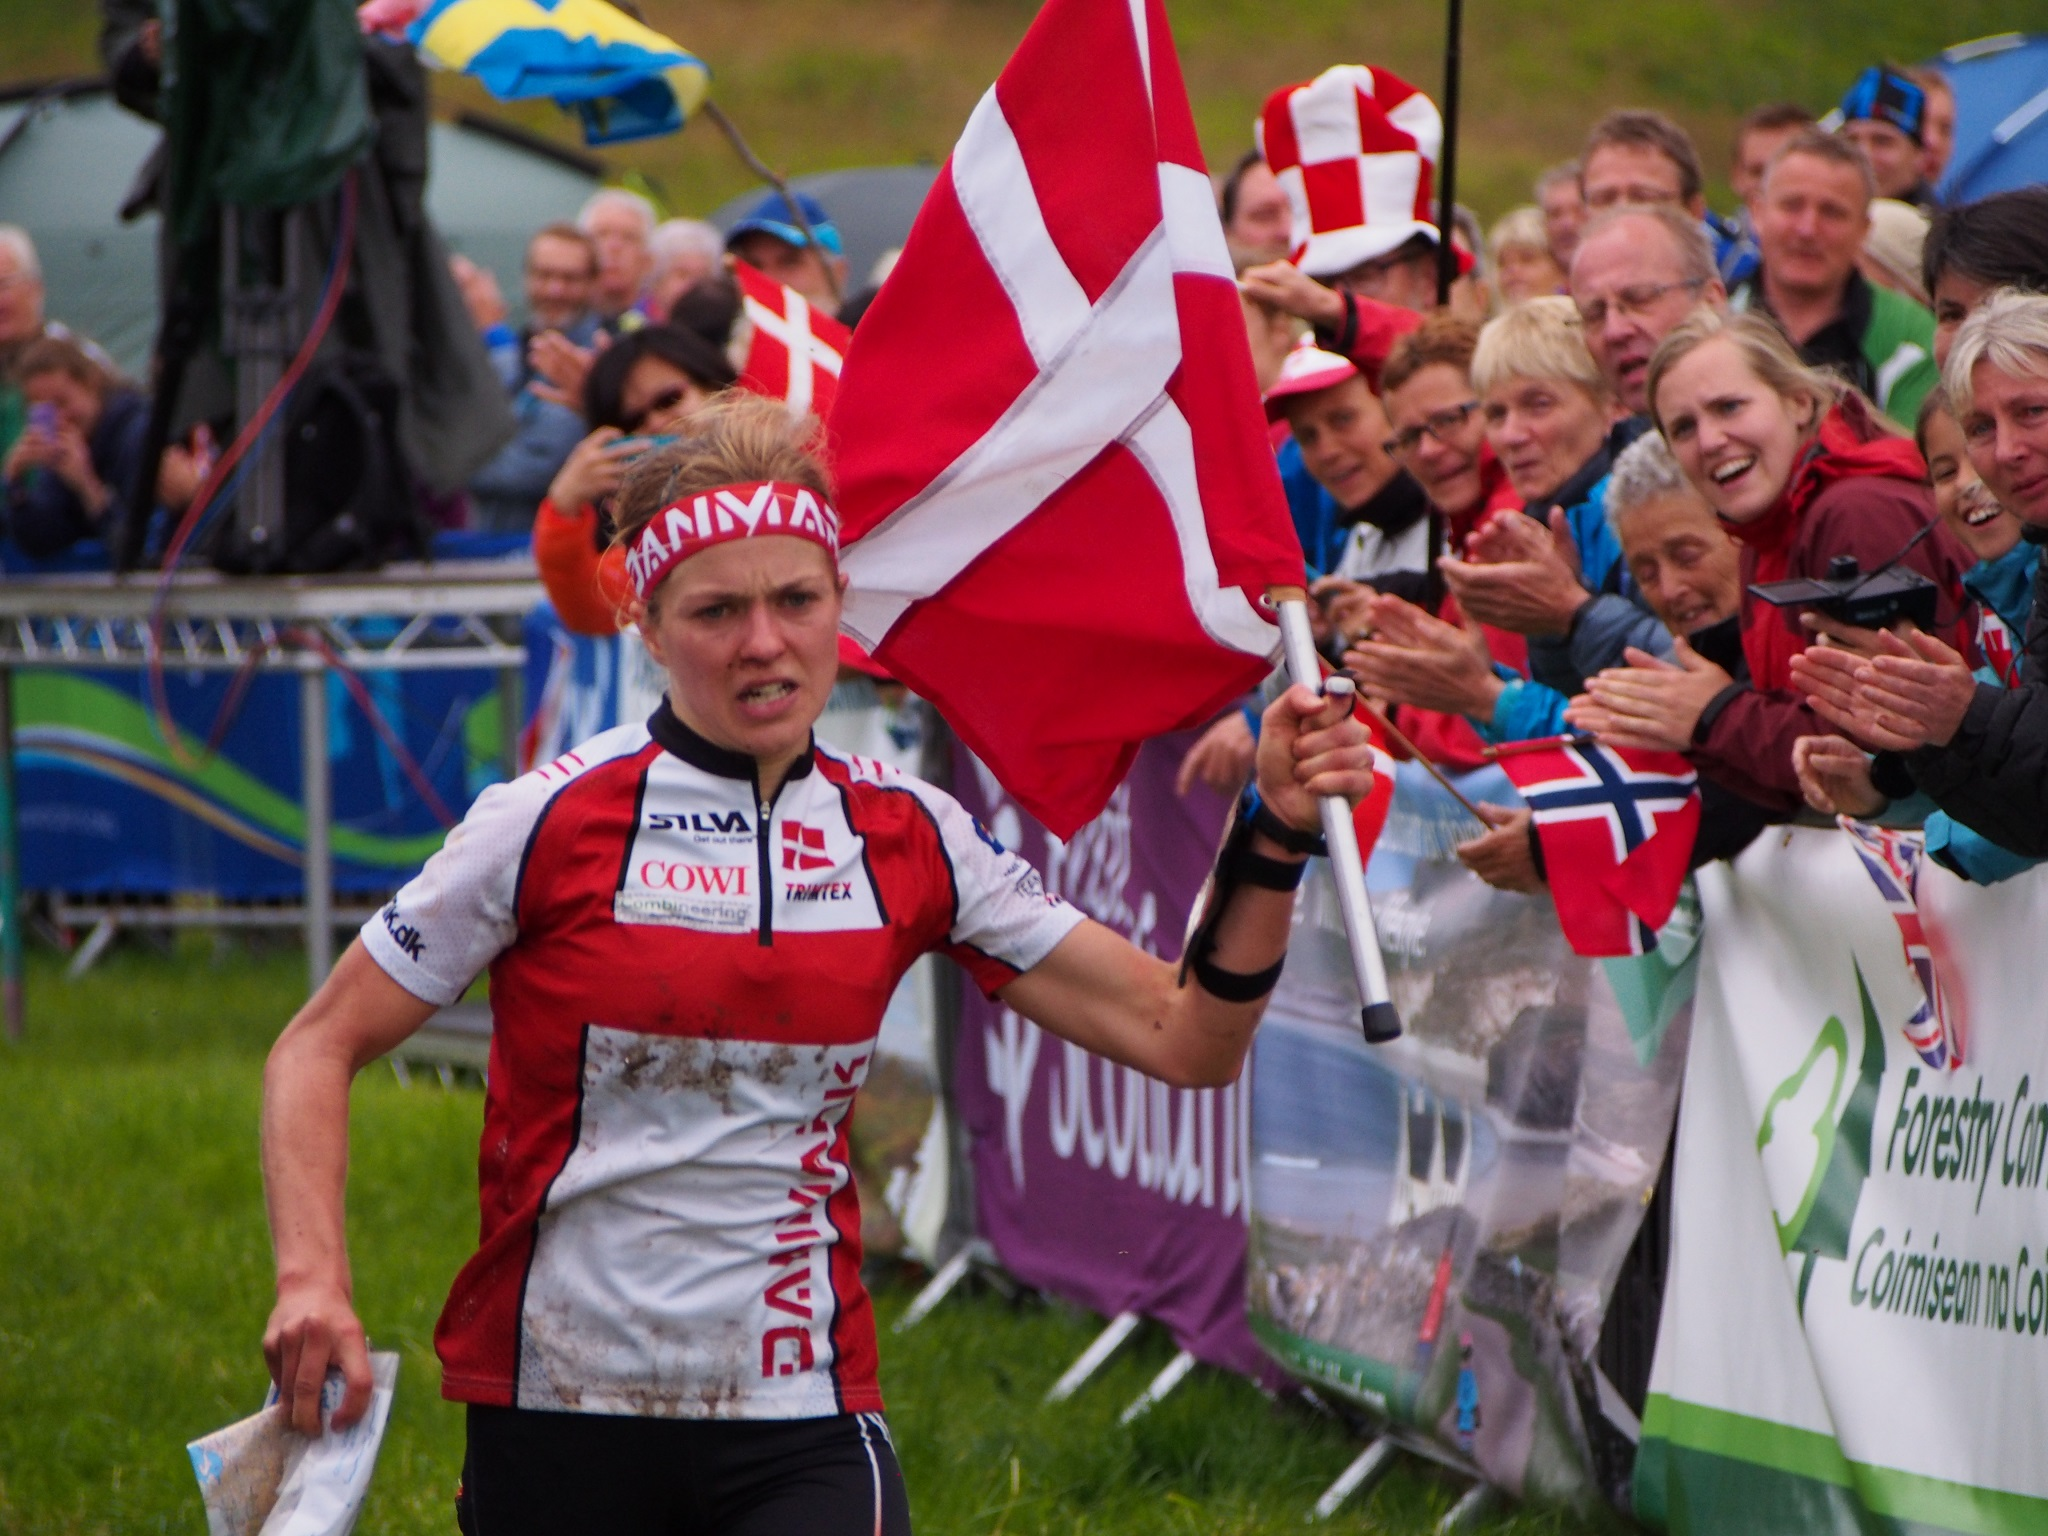 It was a good year for Denmark, Ida Bobach World Champion at the finish of the Long Race in Glen Affric. Courtesy Liveblog http://www.woc2015.org/liveblog/long